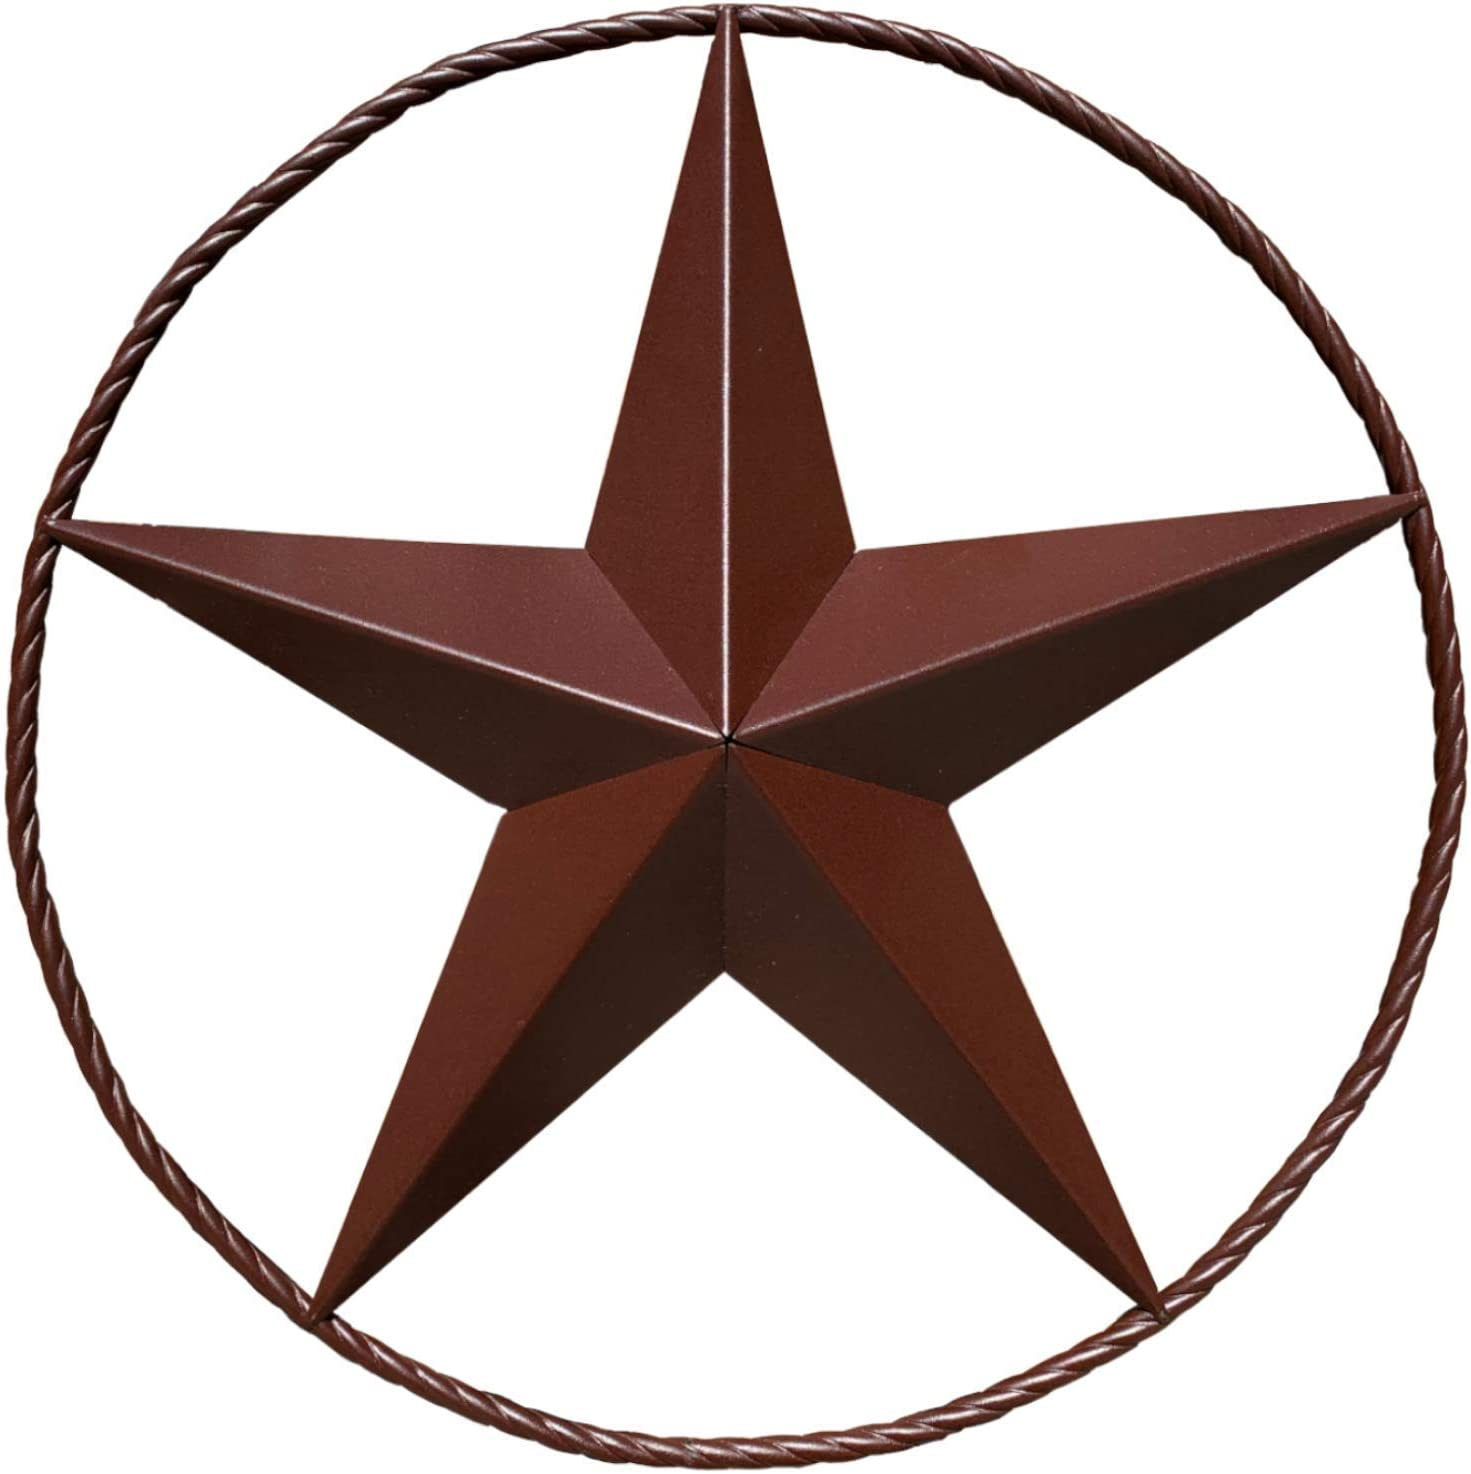 Barn Star - Metal Stars for Outside Texas Stars Art Rustic Vintage Western Country Home Farmhouse Wall Decor (24